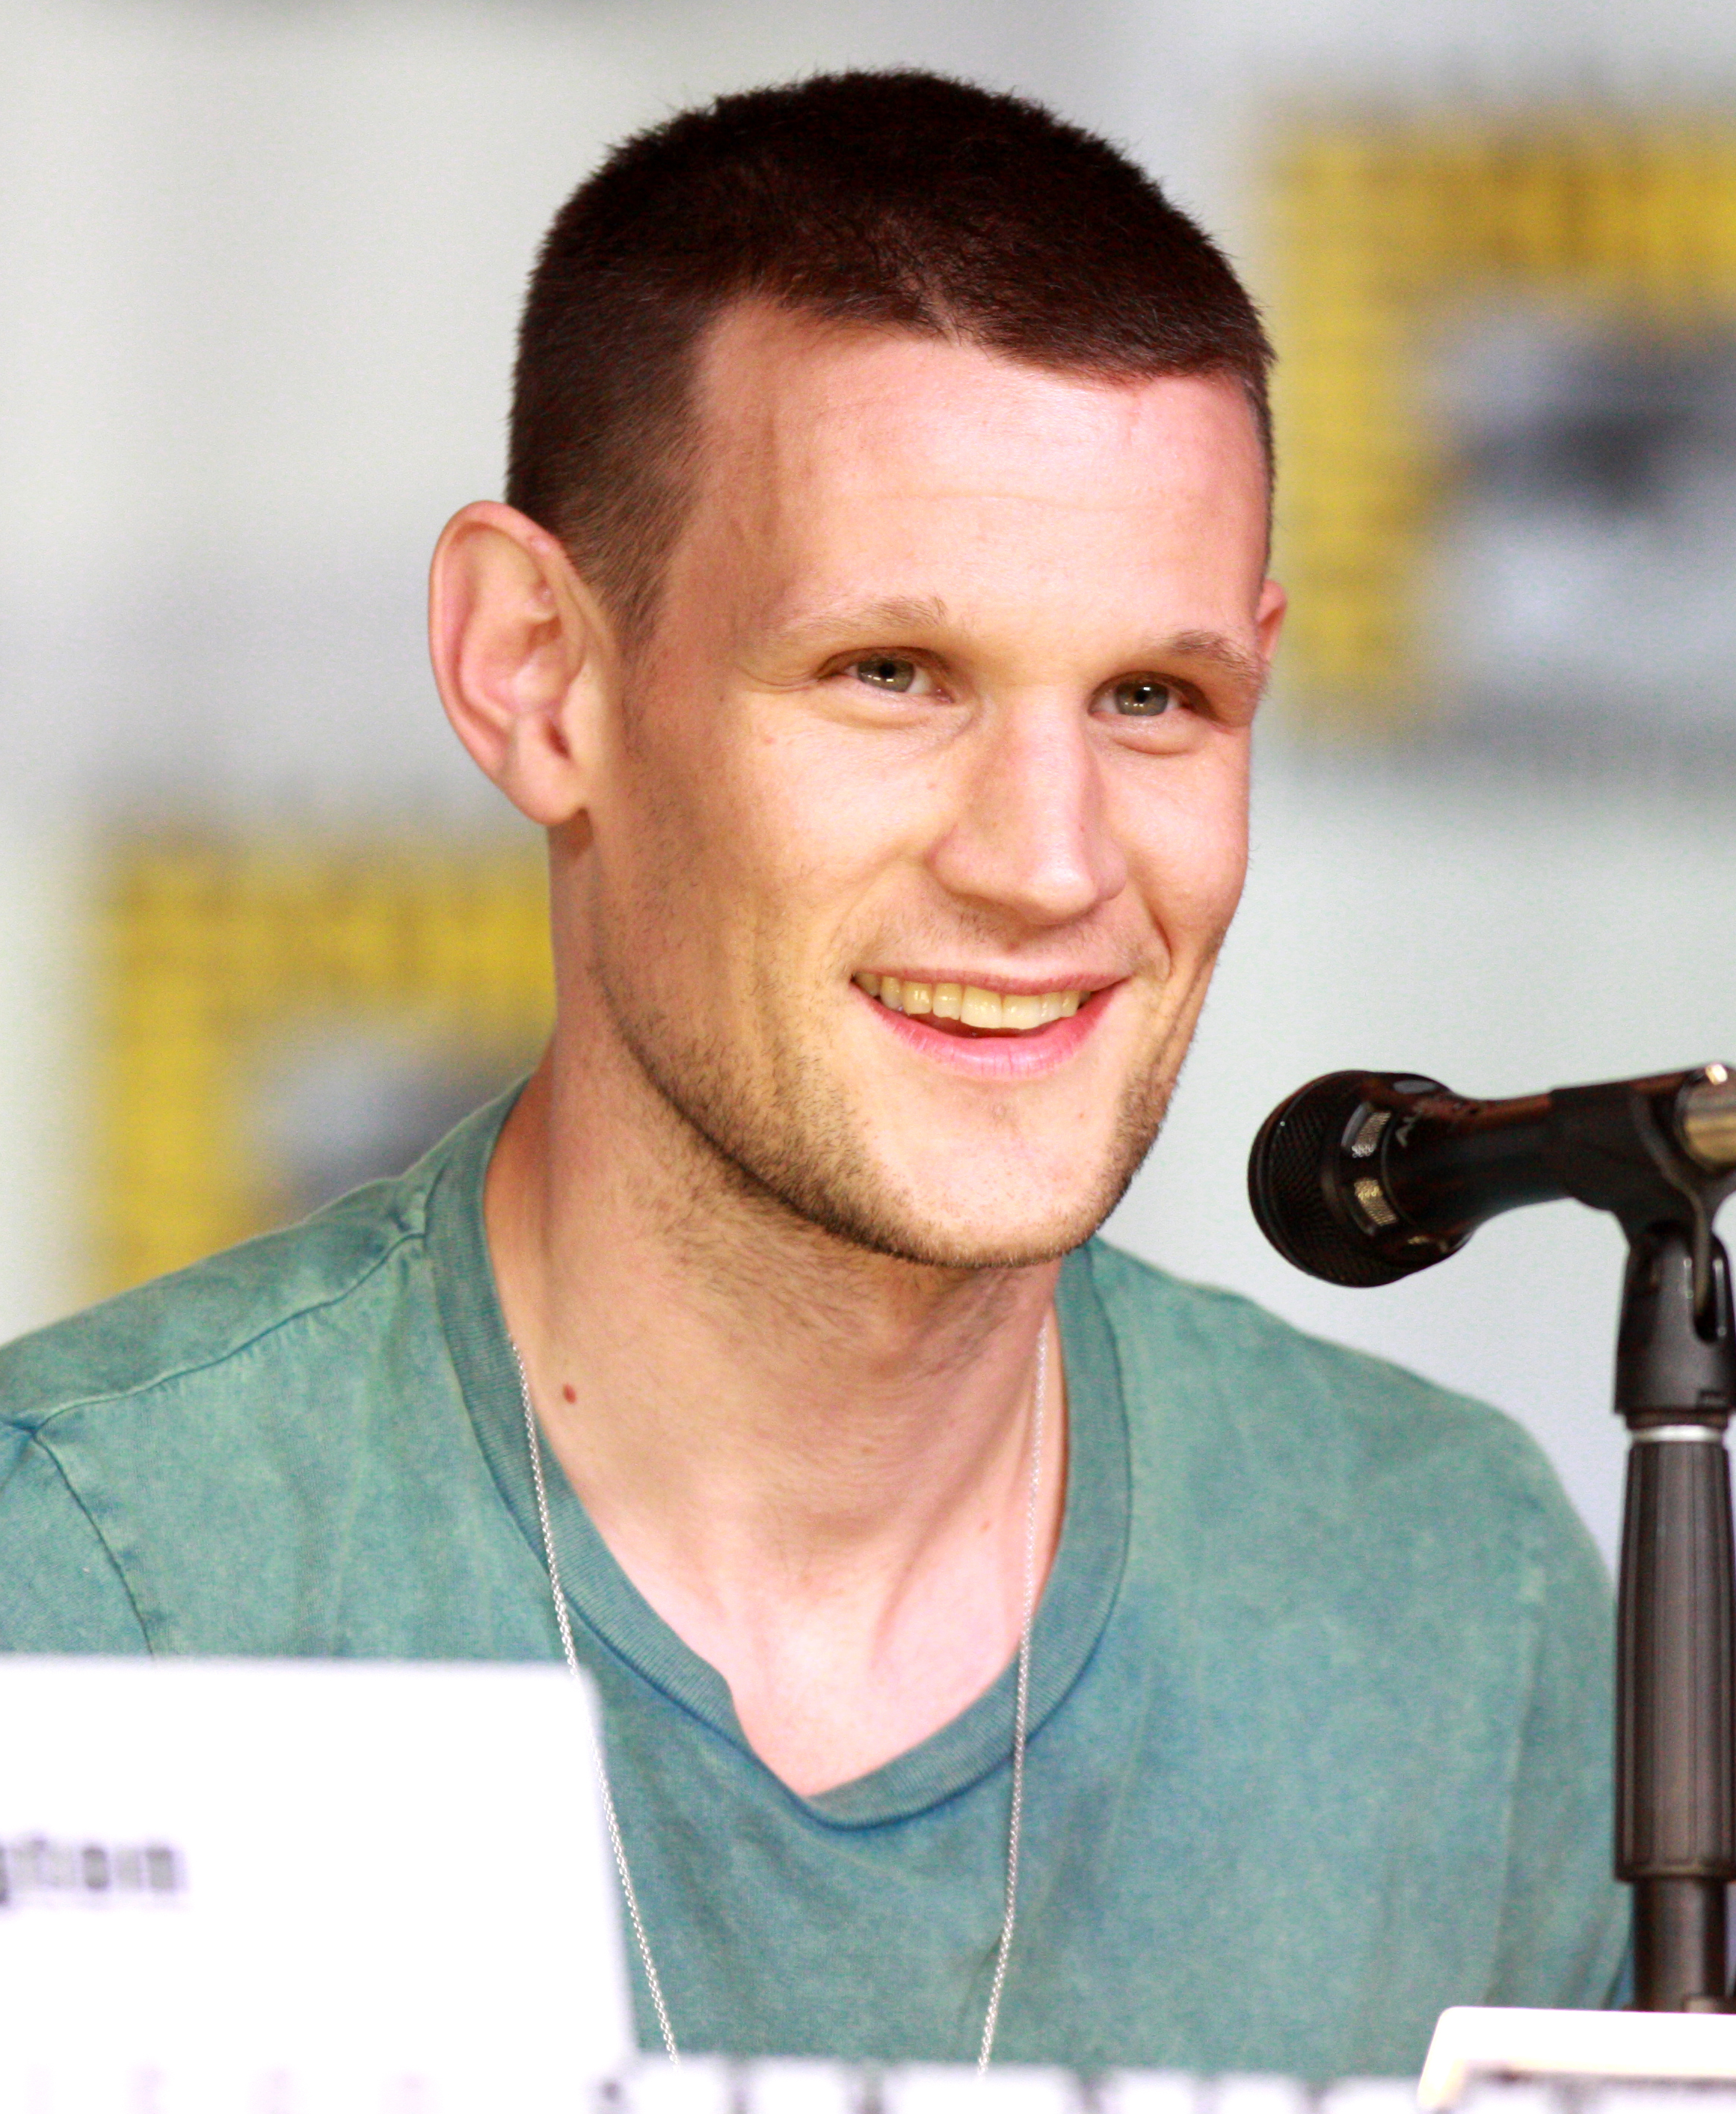 The 35-year old son of father David Smith and mother Lynne Smith Matt Smith in 2018 photo. Matt Smith earned a  million dollar salary - leaving the net worth at 2 million in 2018